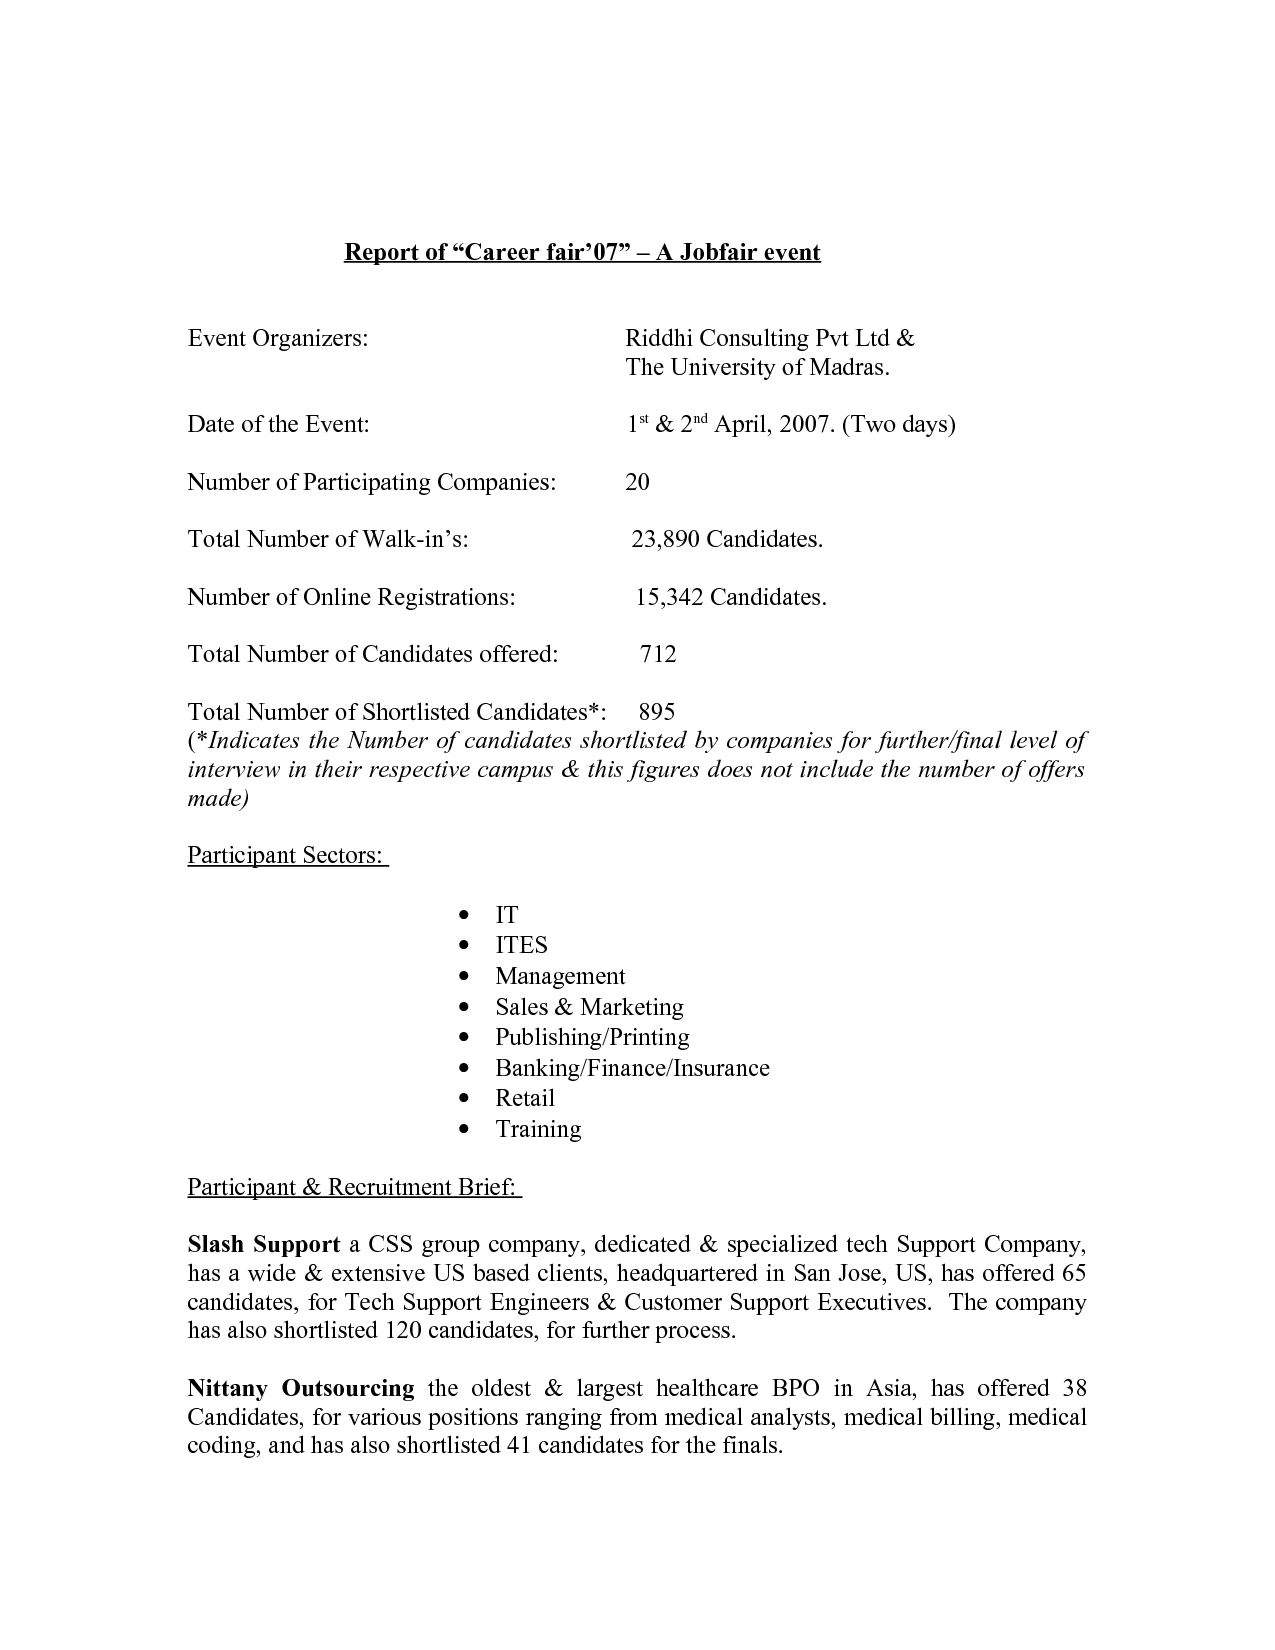 Sample Resume Format For Freshers Resume Format For Freshers Free Download Resume Format For